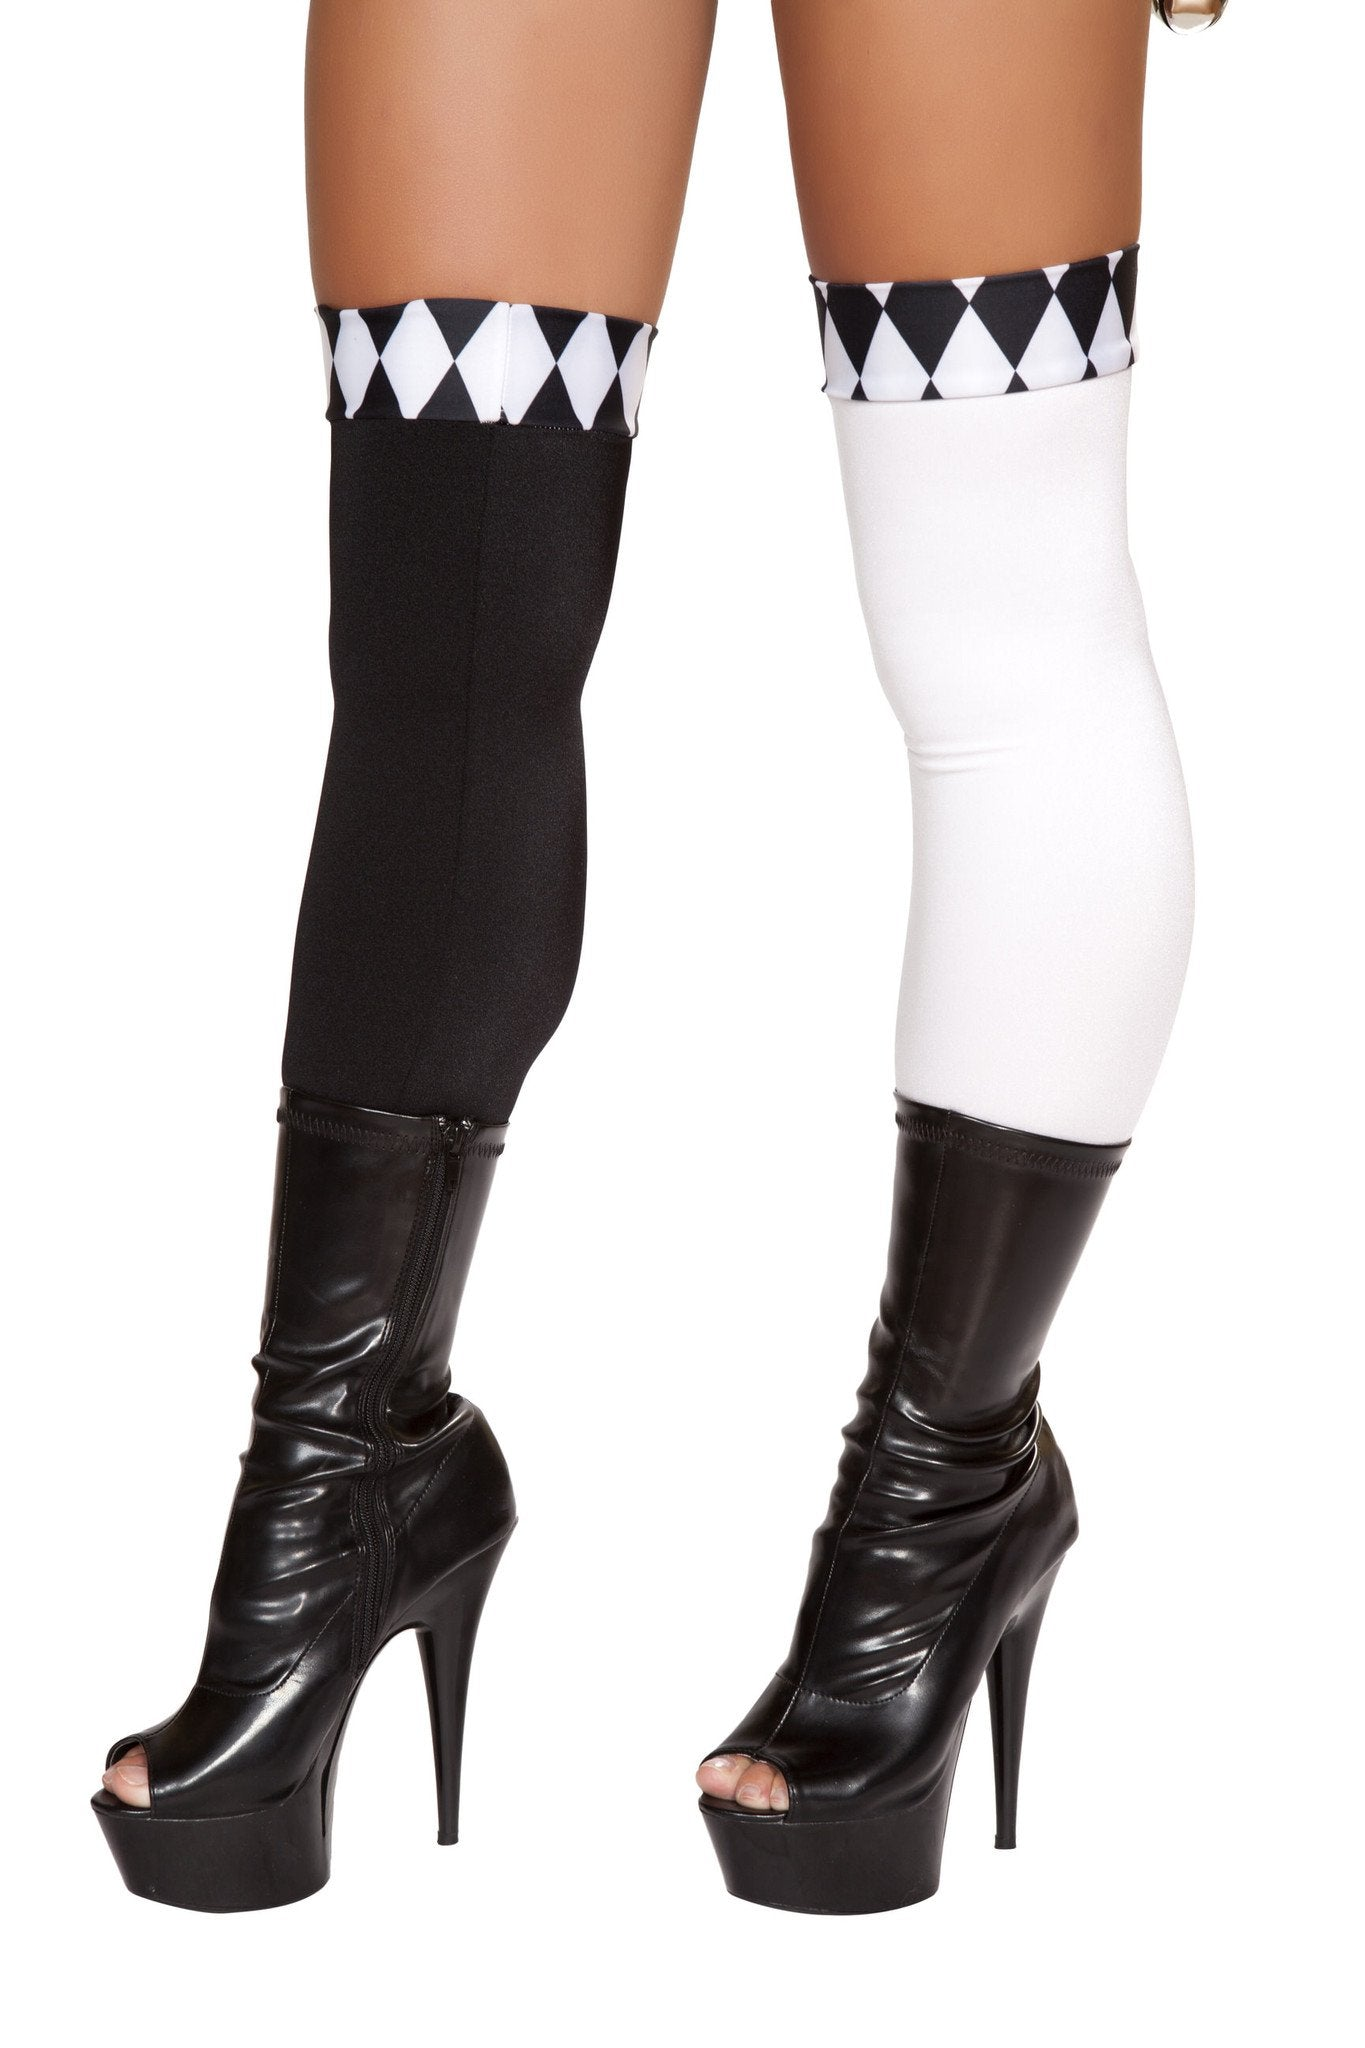 Buy Pair of Black and White Legging Stockings from Rave Fix for $9.99 with Same Day Shipping Designed by Roma Costume ST4673-AS-O/S